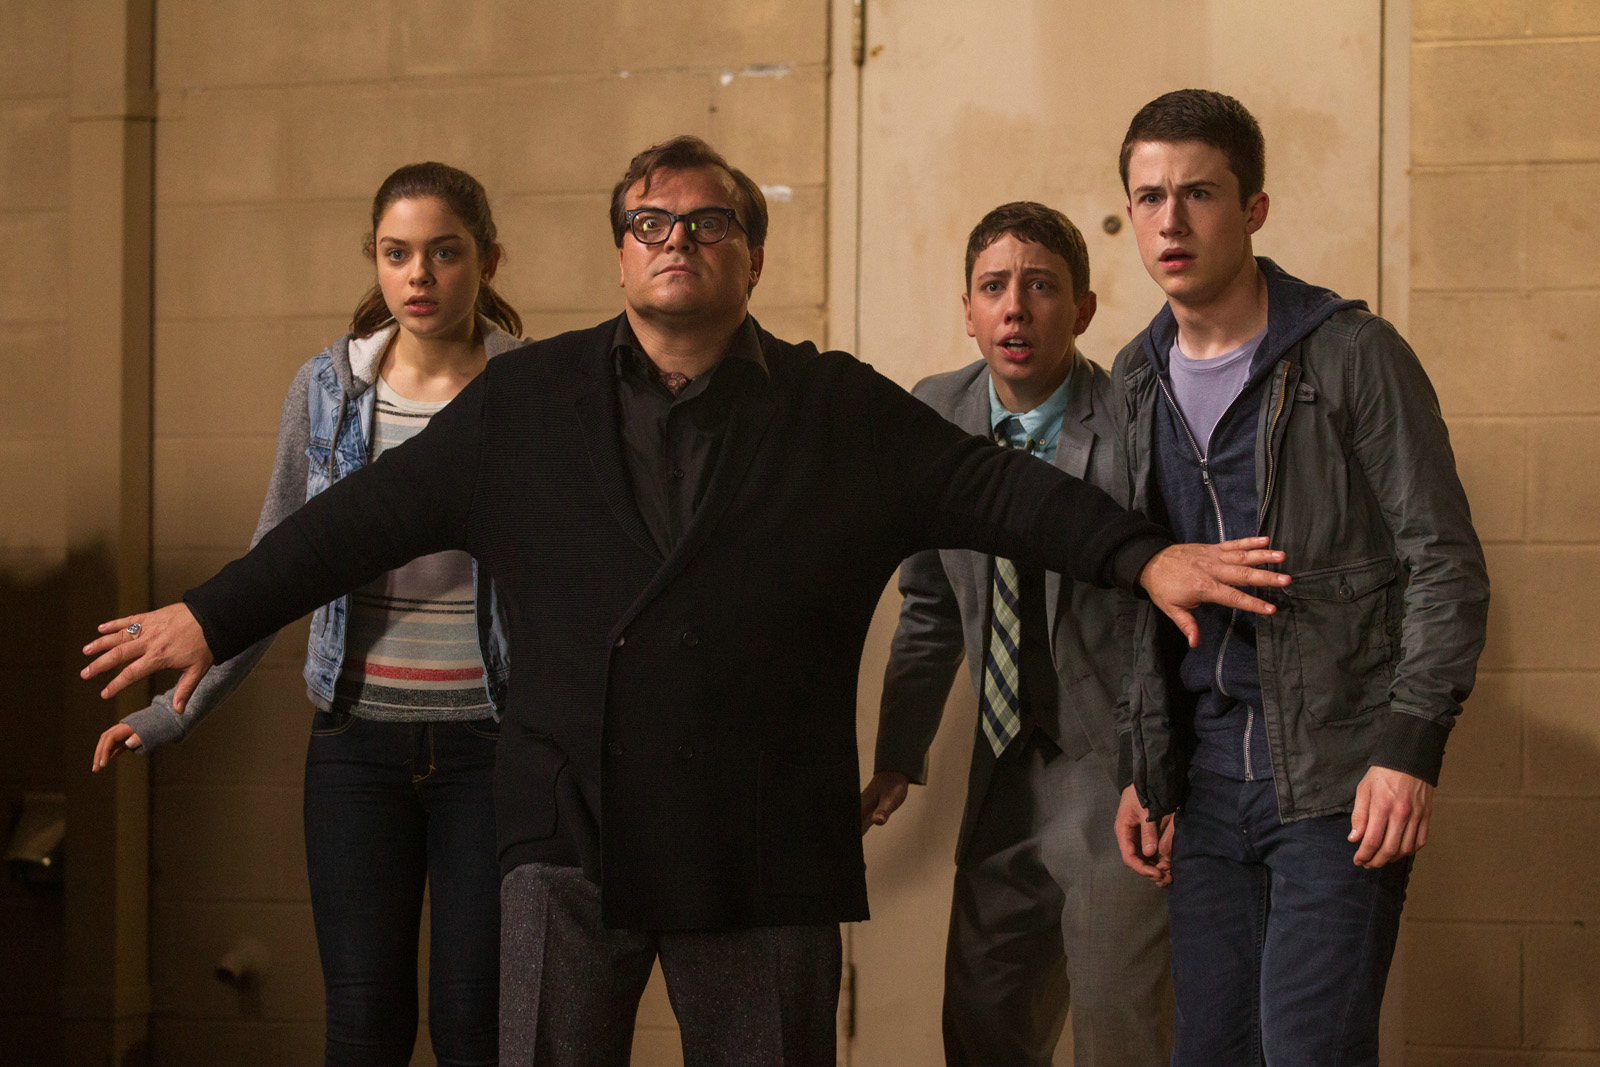 Chair de Poule - Le film : Photo Dylan Minnette, Jack Black, Odeya Rush, Ryan Lee